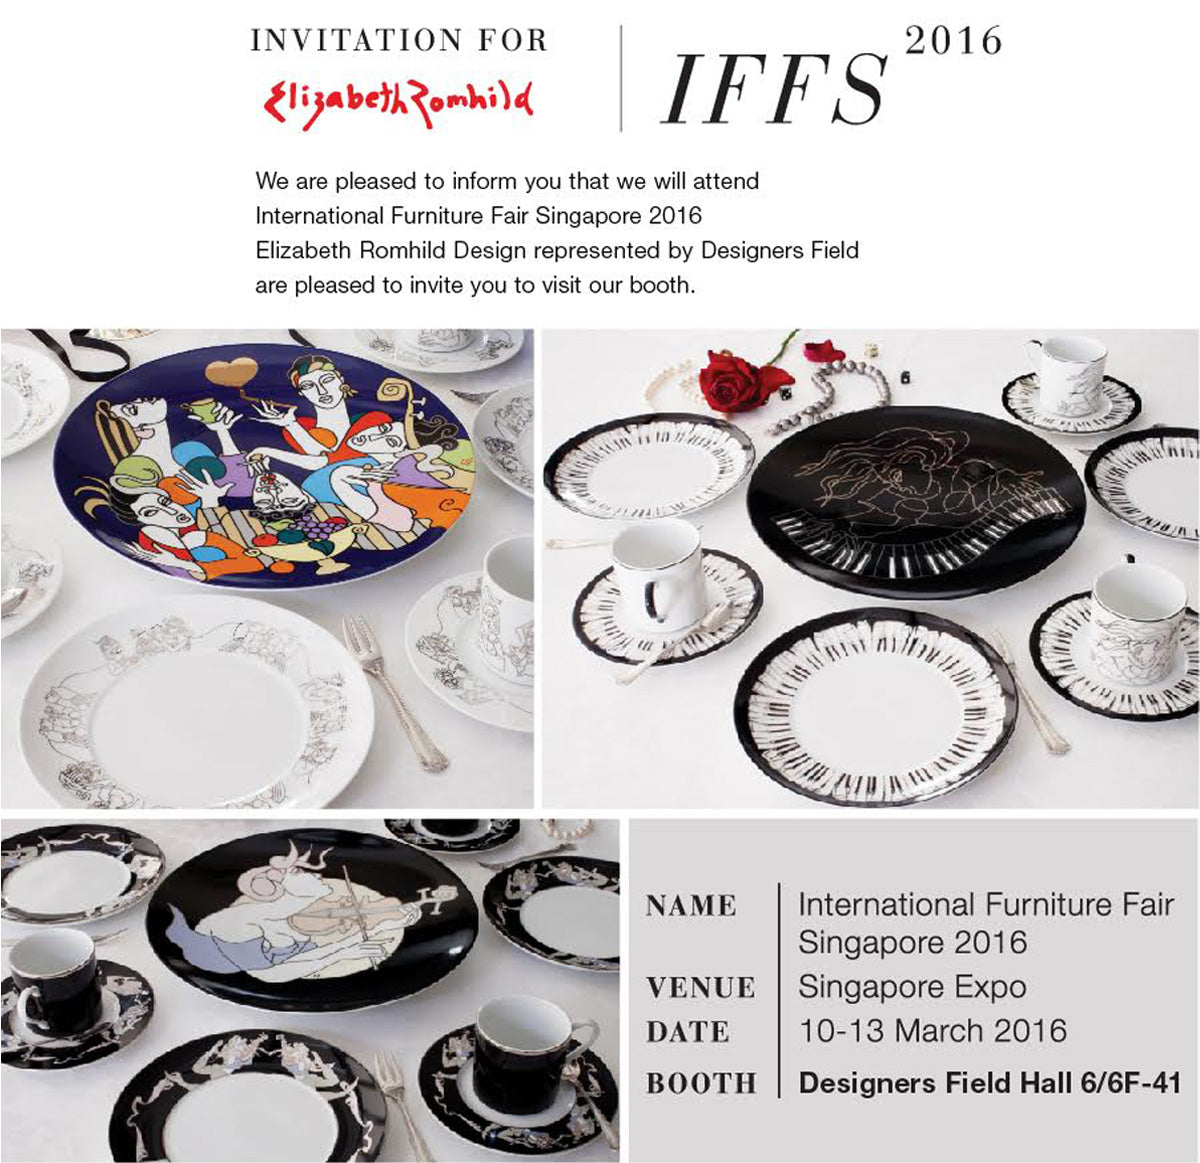 Invitation For Elizabeth Romhild | IFFS 2016